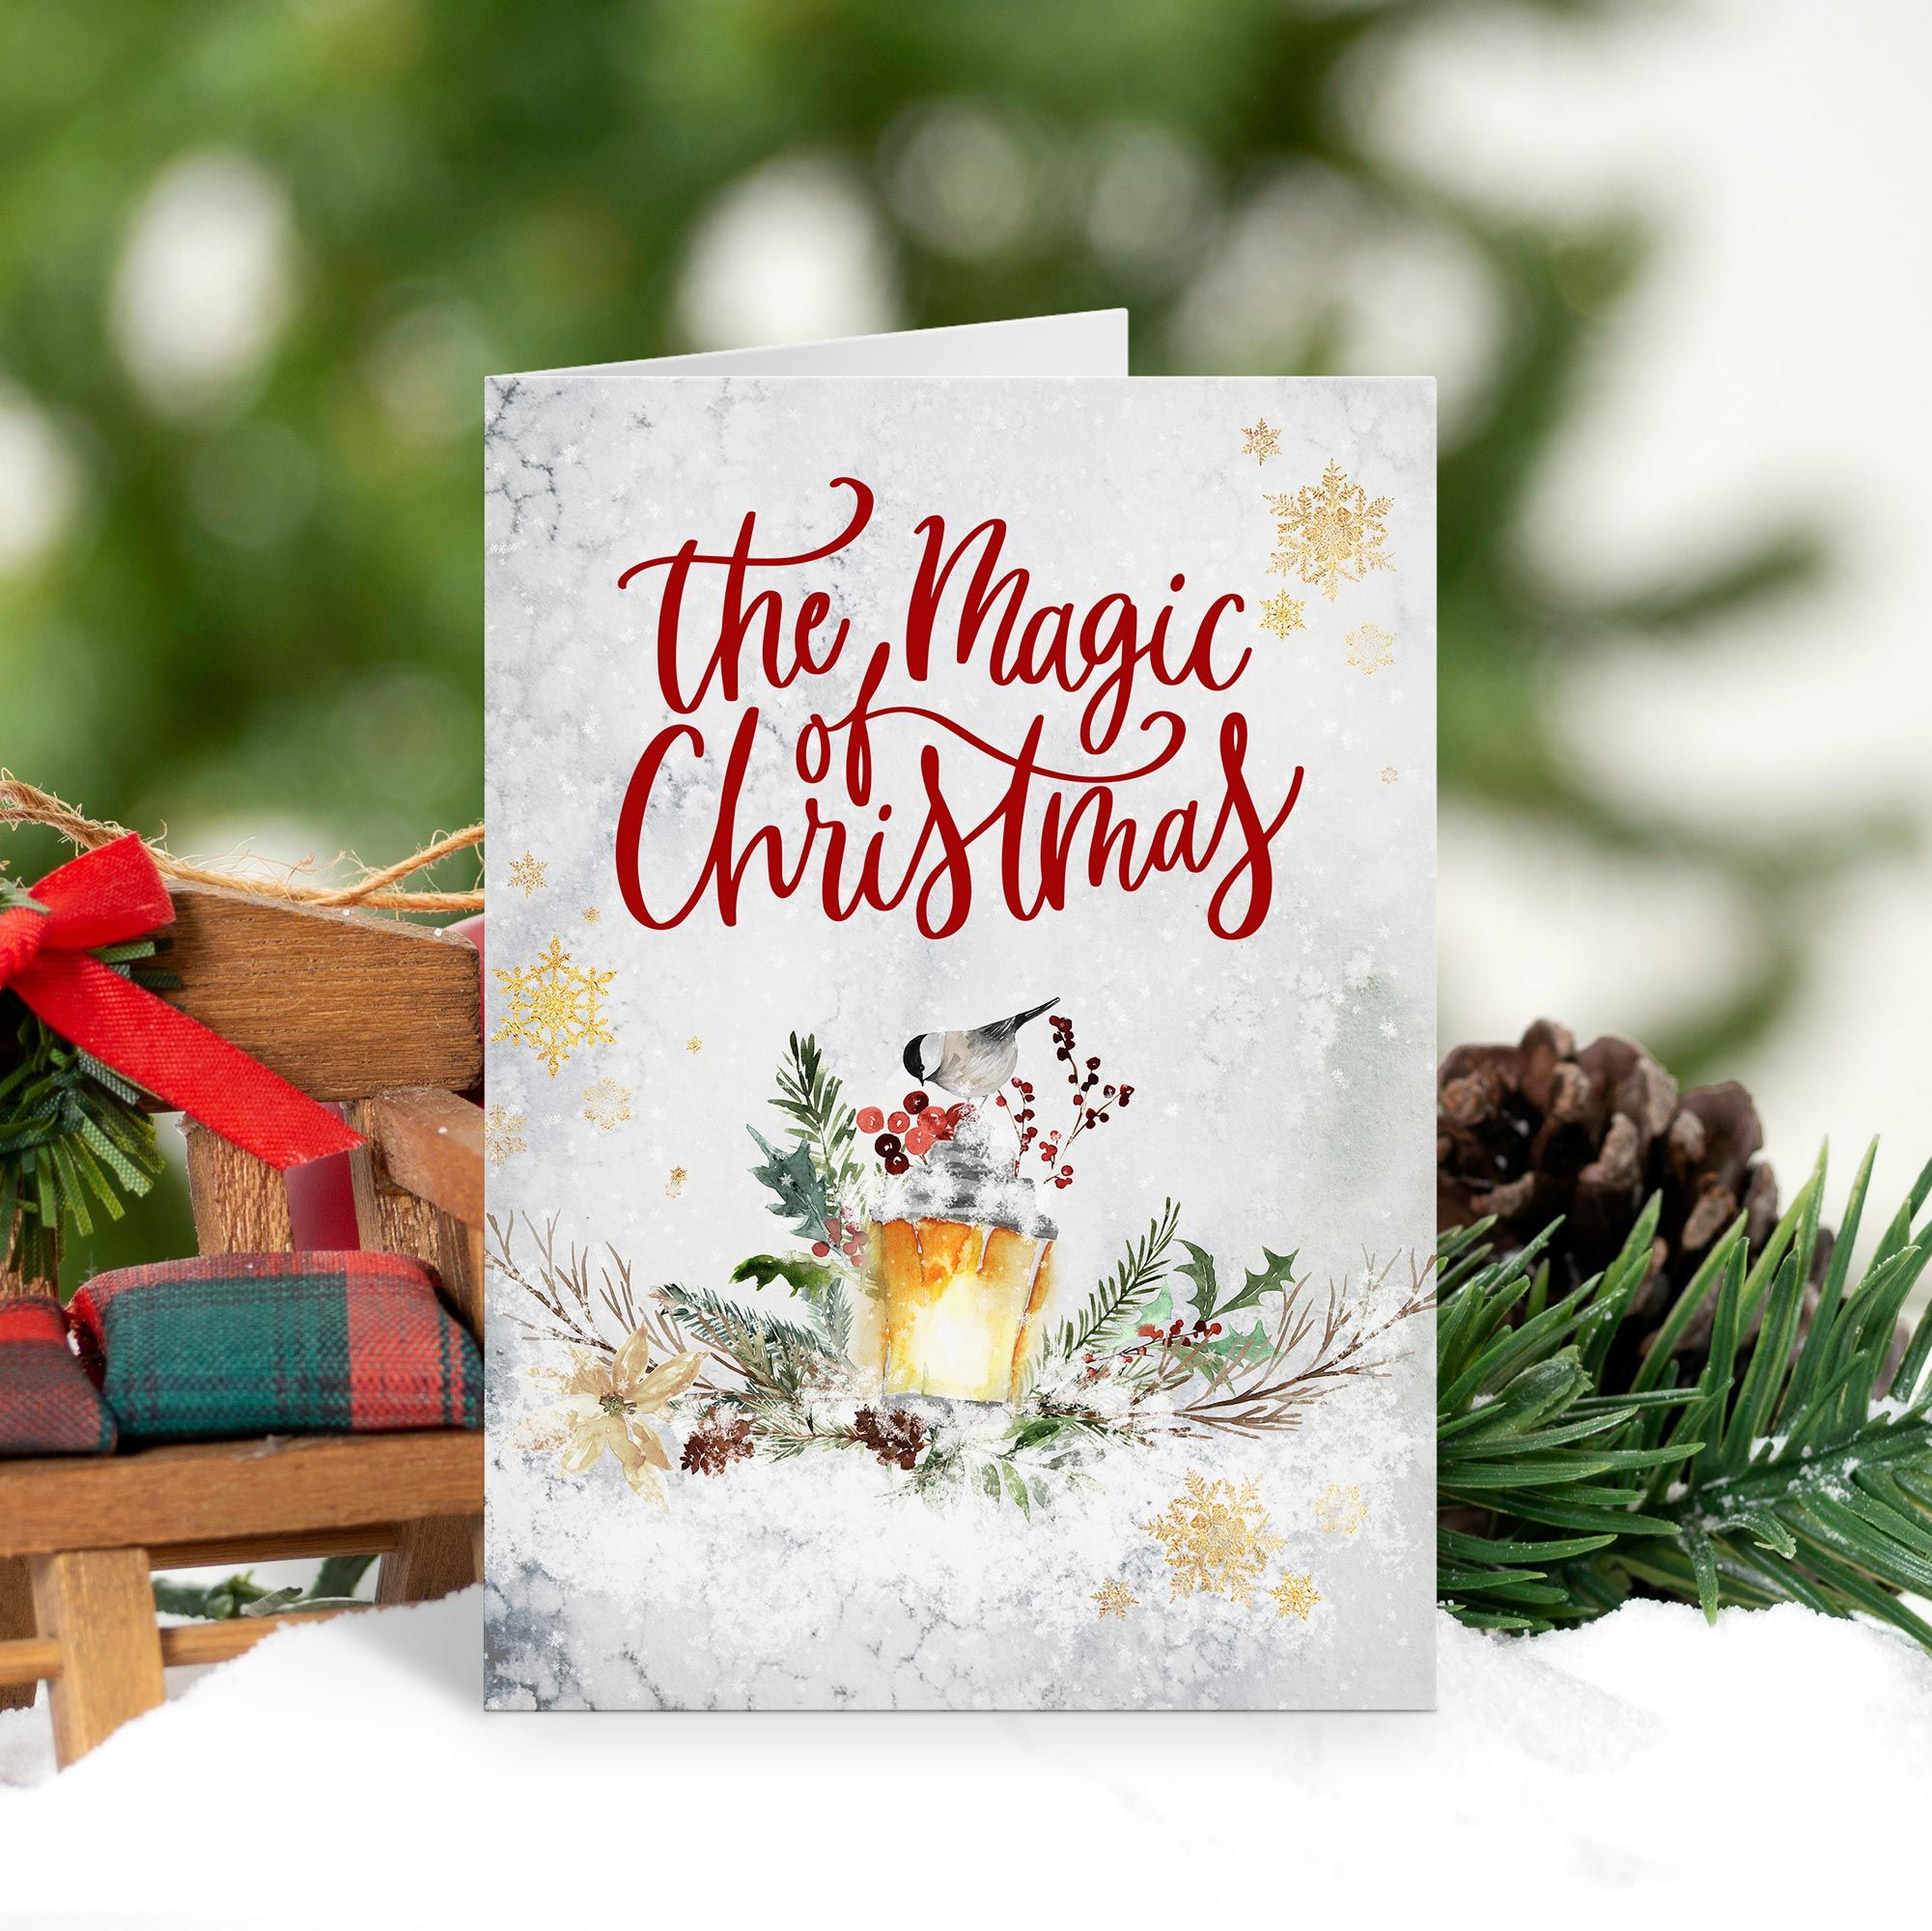 The Magic Of Christmas Holiday Card Zazzle Com Christmas Holiday Cards Christmas Holiday Greetings Christmas Greetings